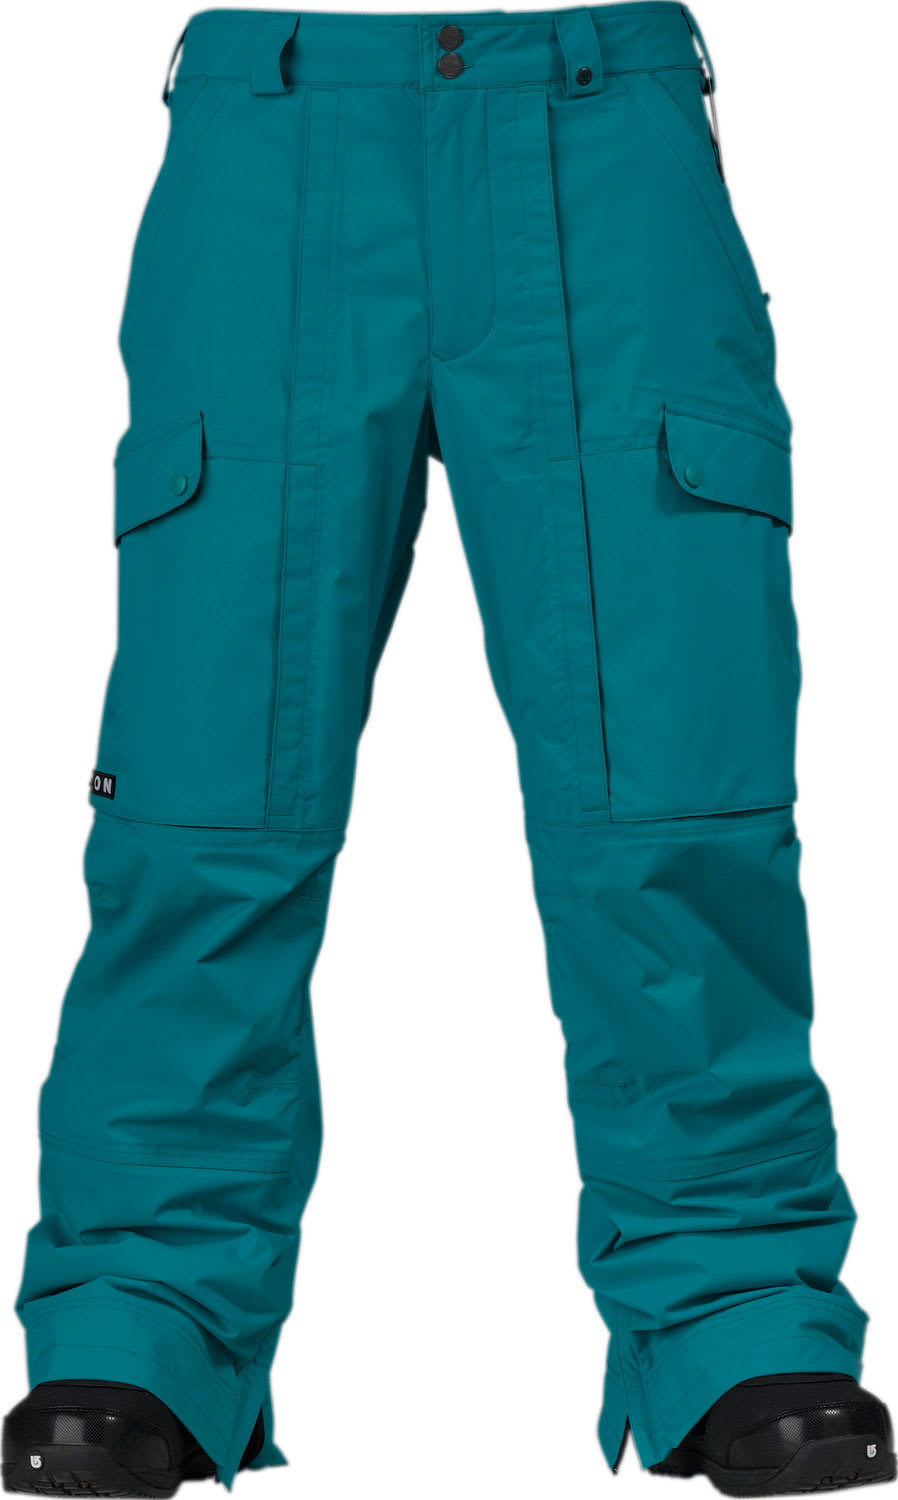 Shop for Burton Restricted Gungeon Cargo Snowboard Pants Iroquois - Men's